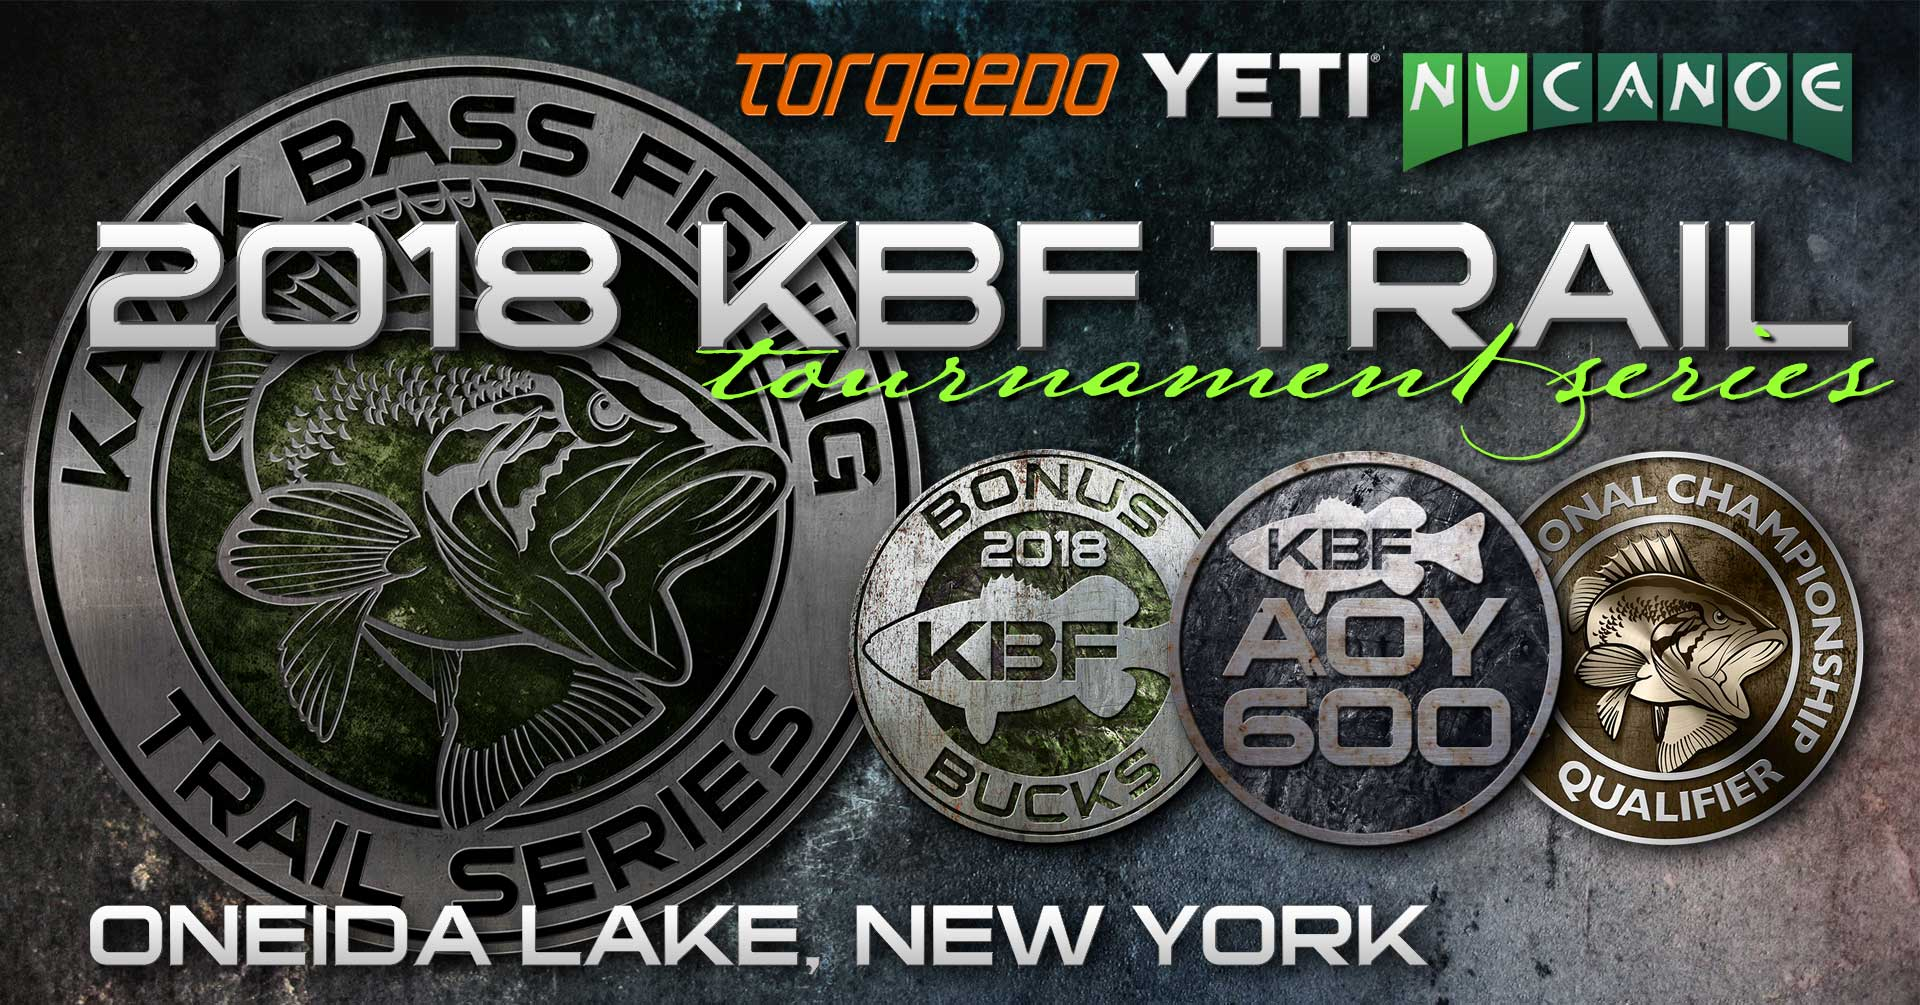 Oneida Lake NY KBF TRAIL Series Tournament